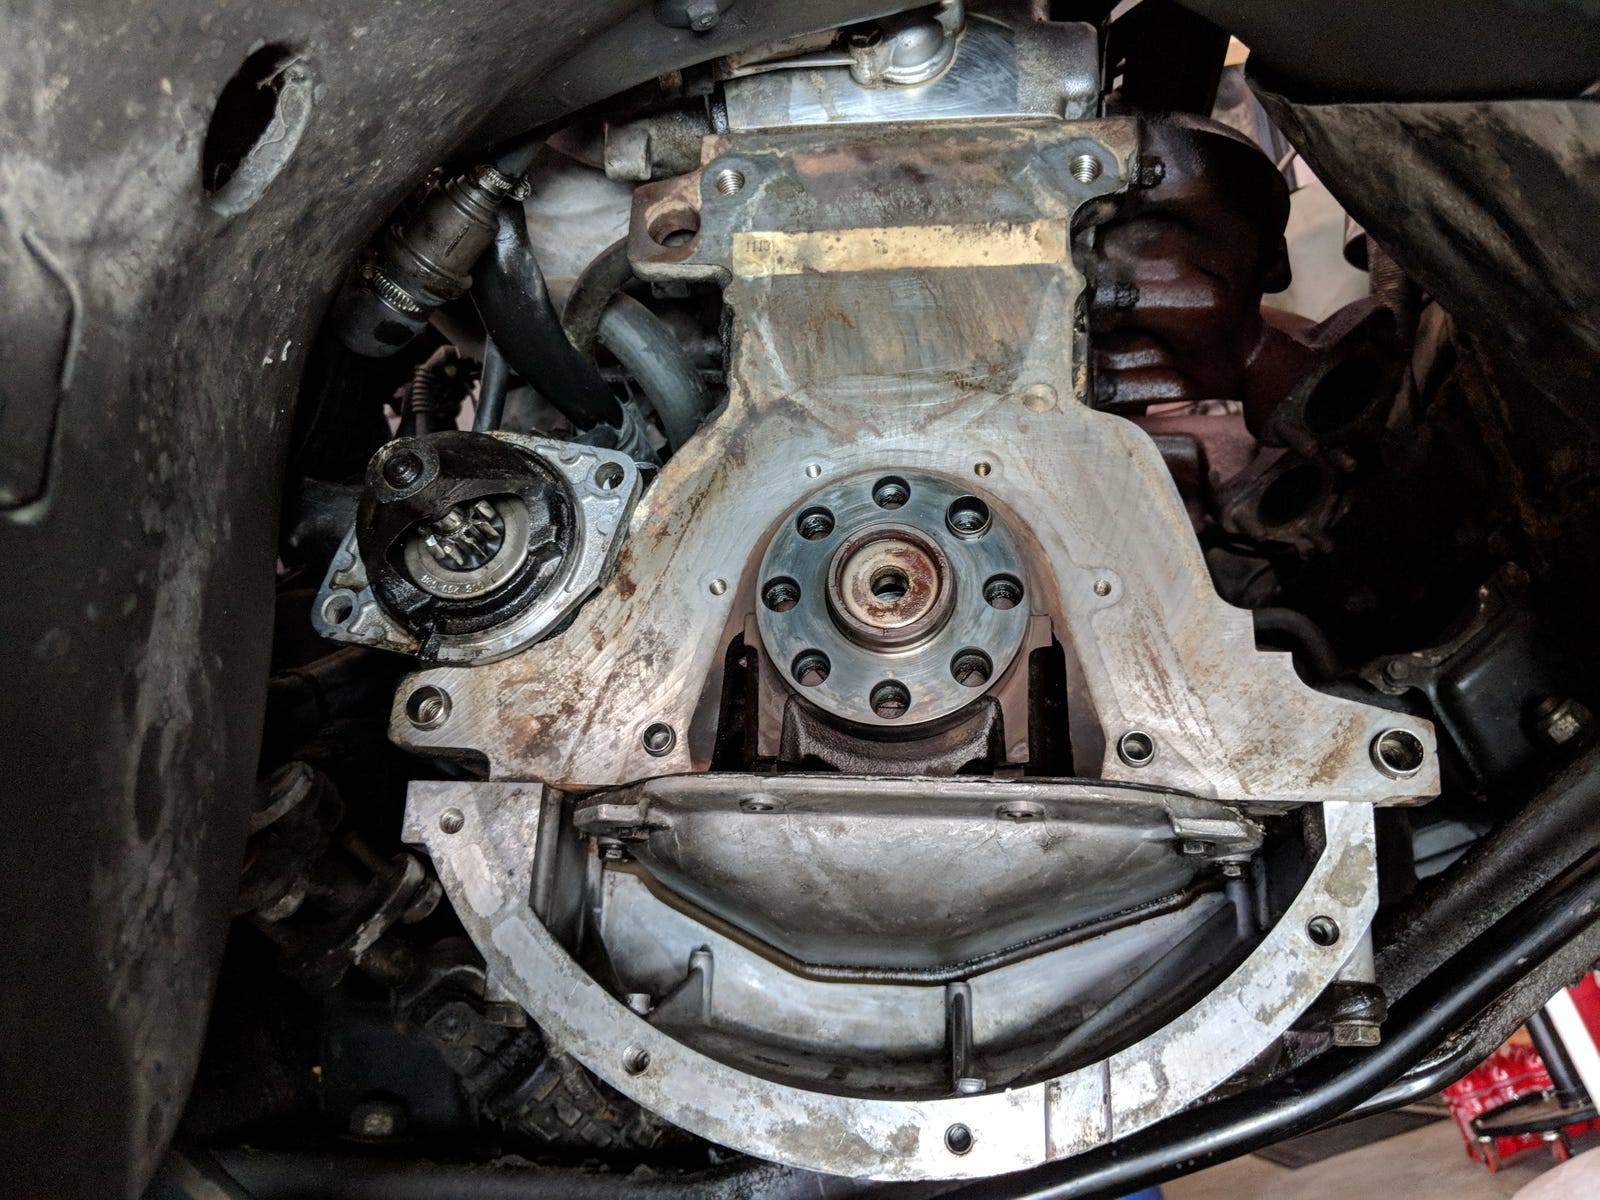 The rear main seal carrier removed from the engine.